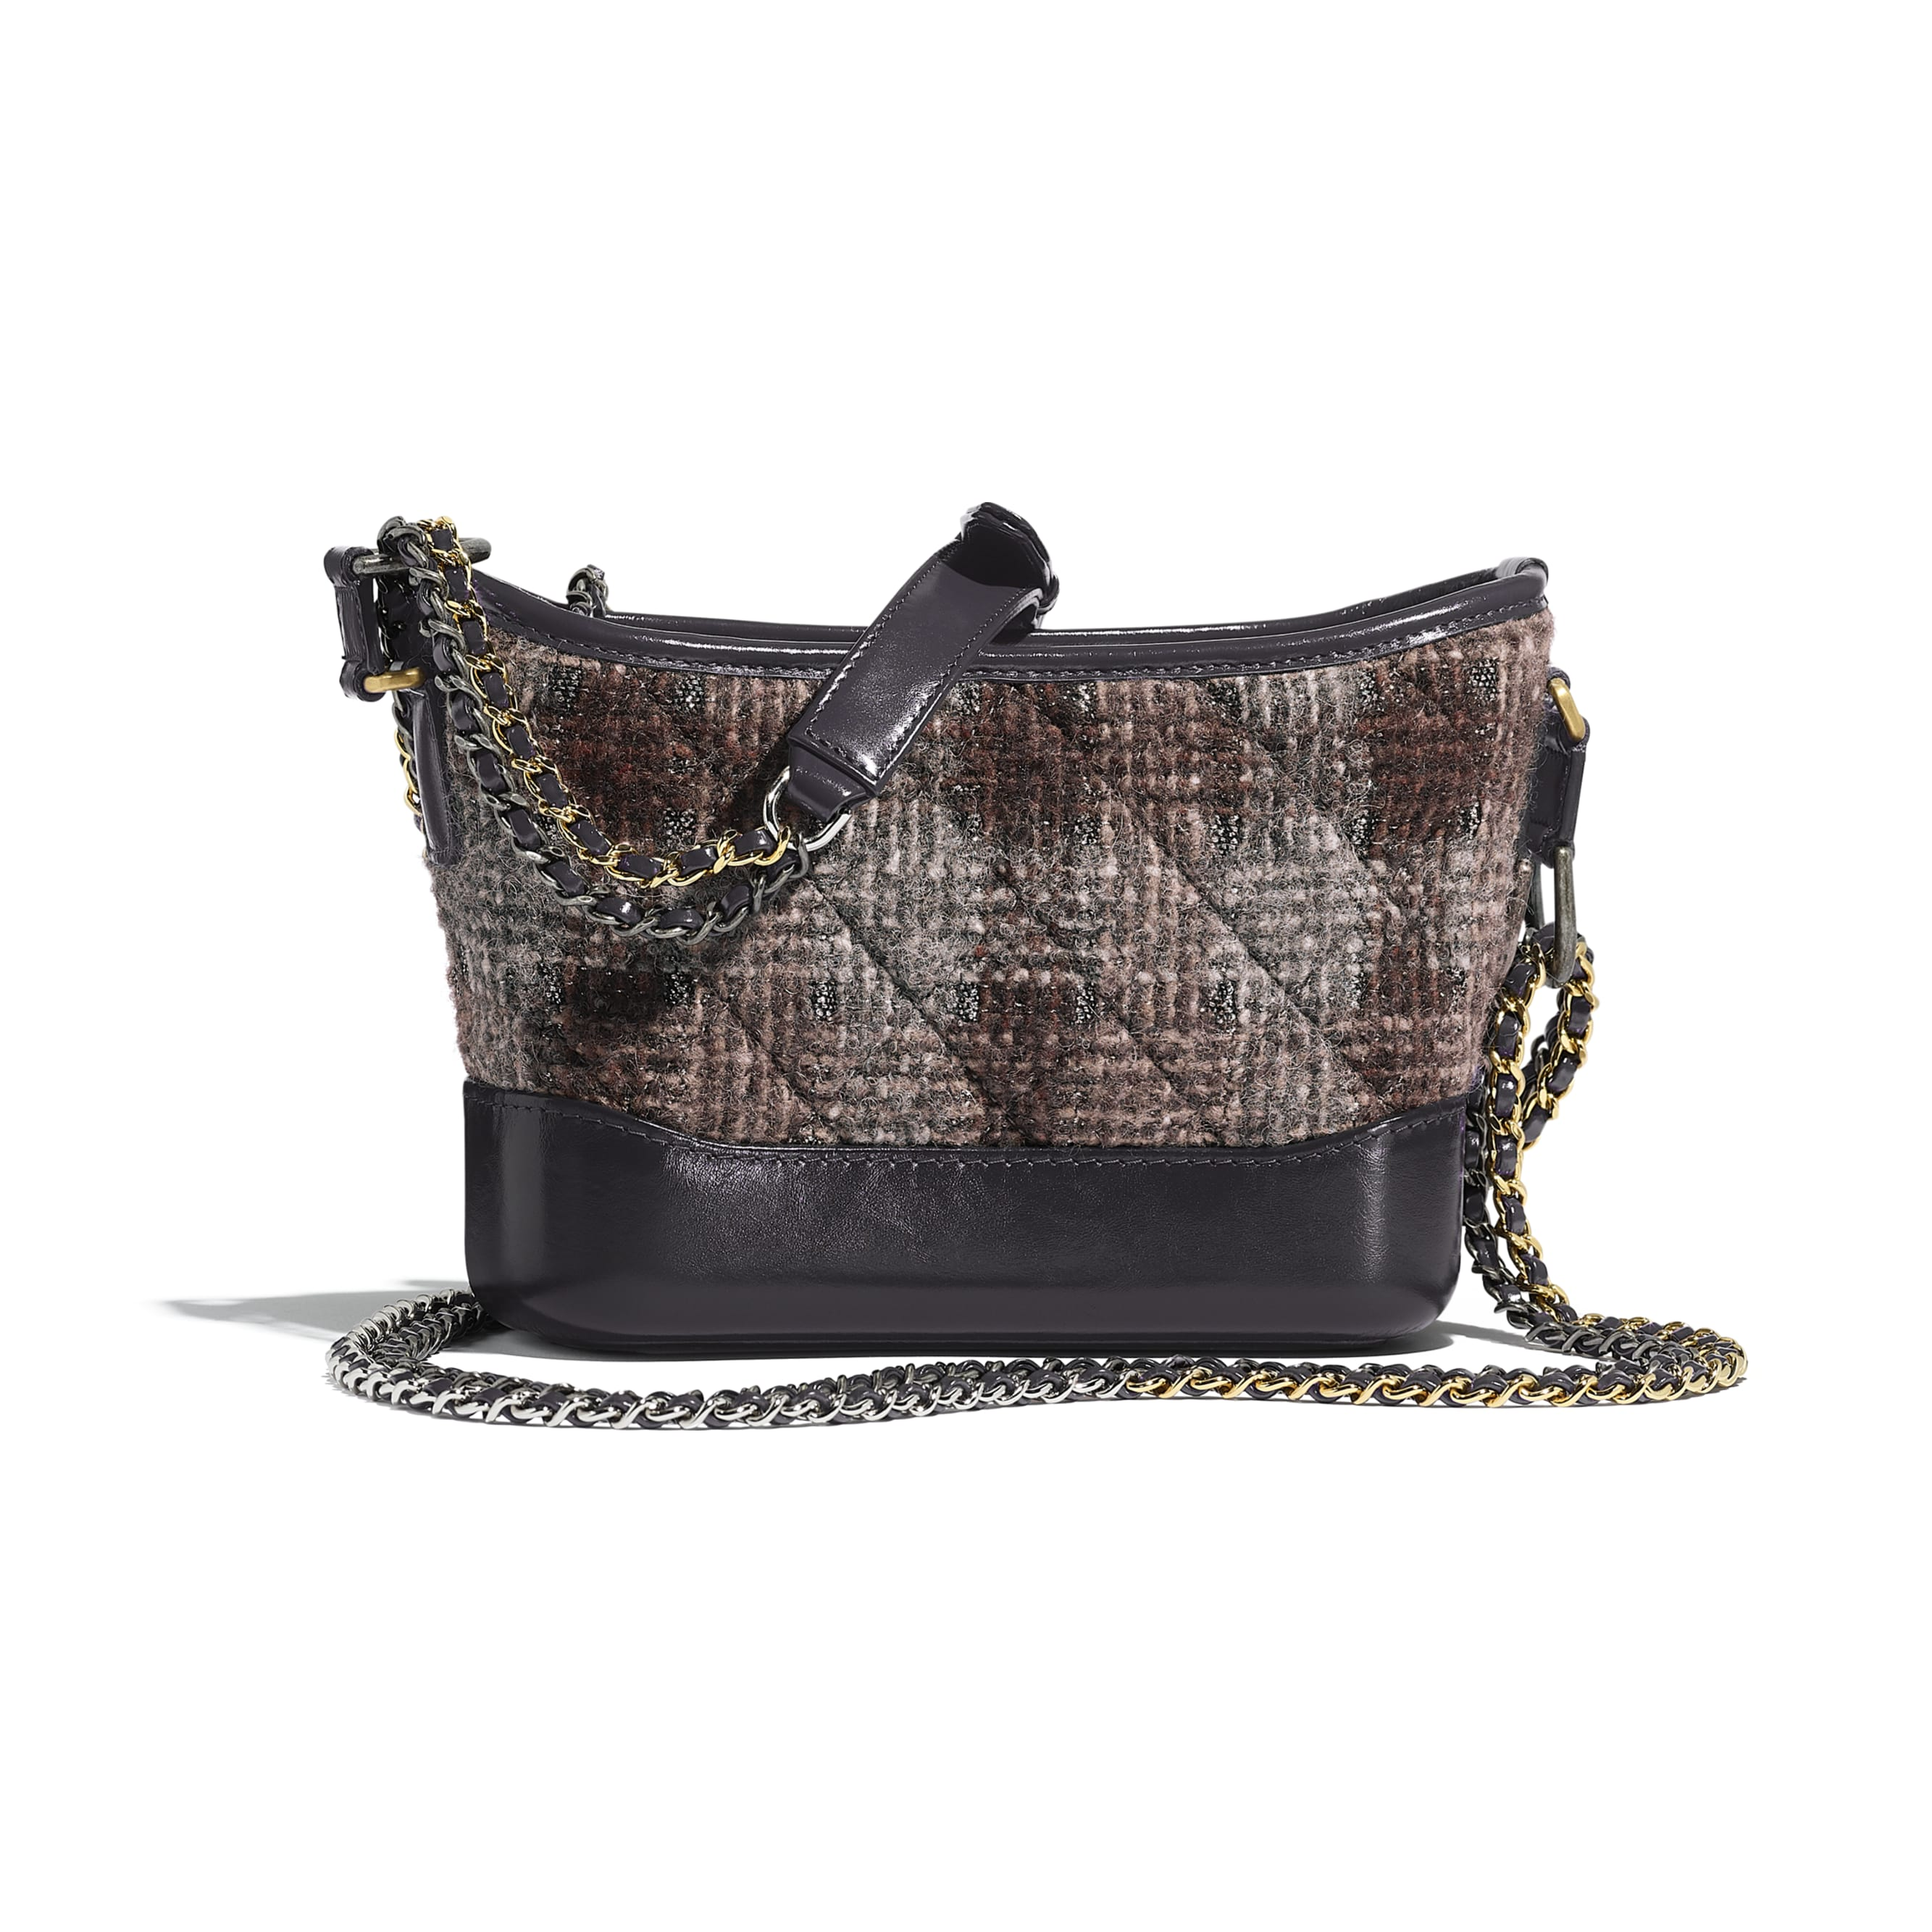 CHANEL'S GABRIELLE Small Hobo Bag - Gray, Brown & Silver - Tweed, Calfskin, Gold-Tone & Silver-Tone Metal - Alternative view - see standard sized version